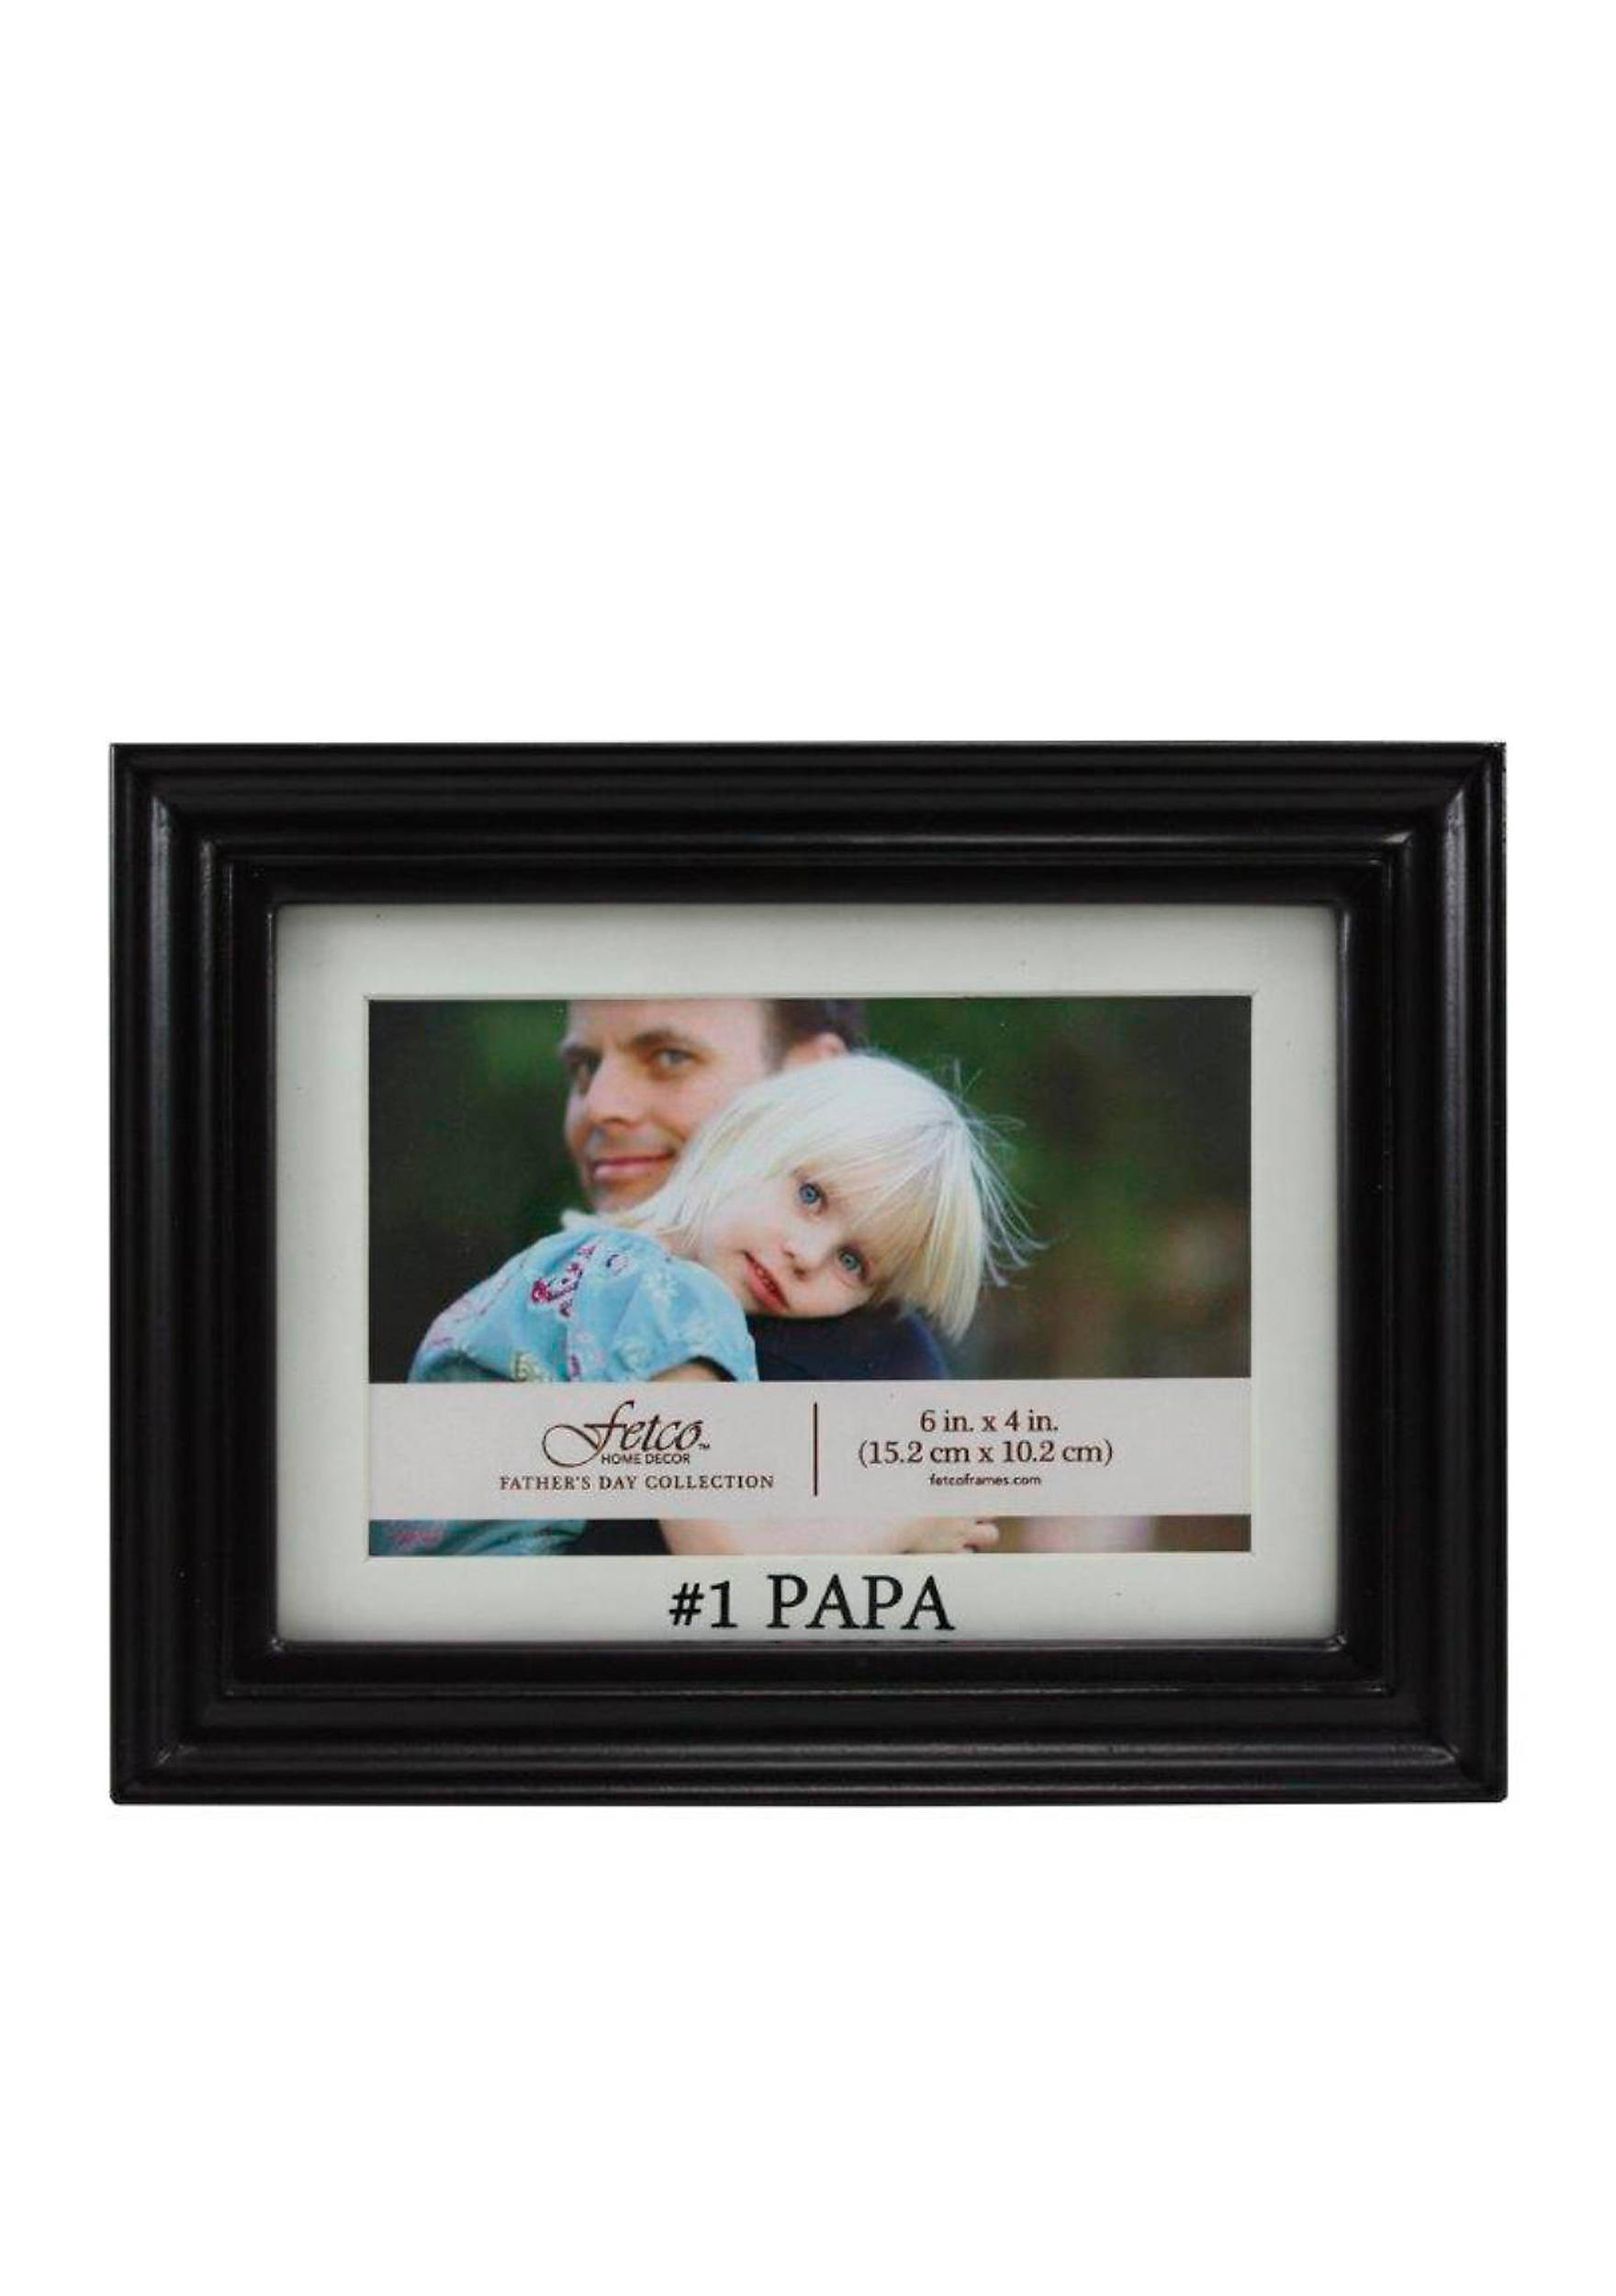 Fetco home dcor 1 papa 4x6 picture frame belk images jeuxipadfo Gallery